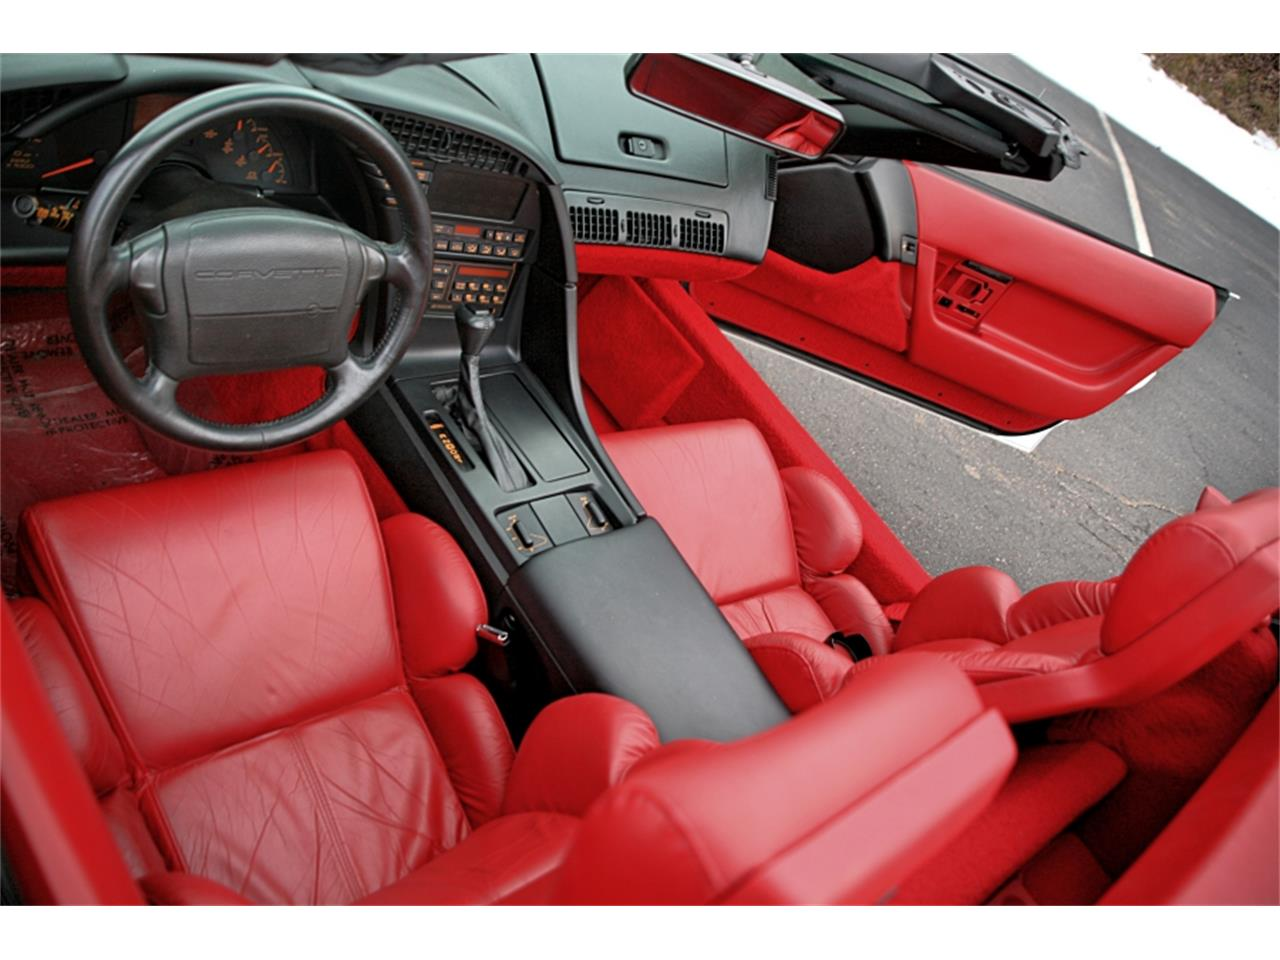 Large Picture of '92 Corvette located in Old Forge Pennsylvania - $19,900.00 - MSGH